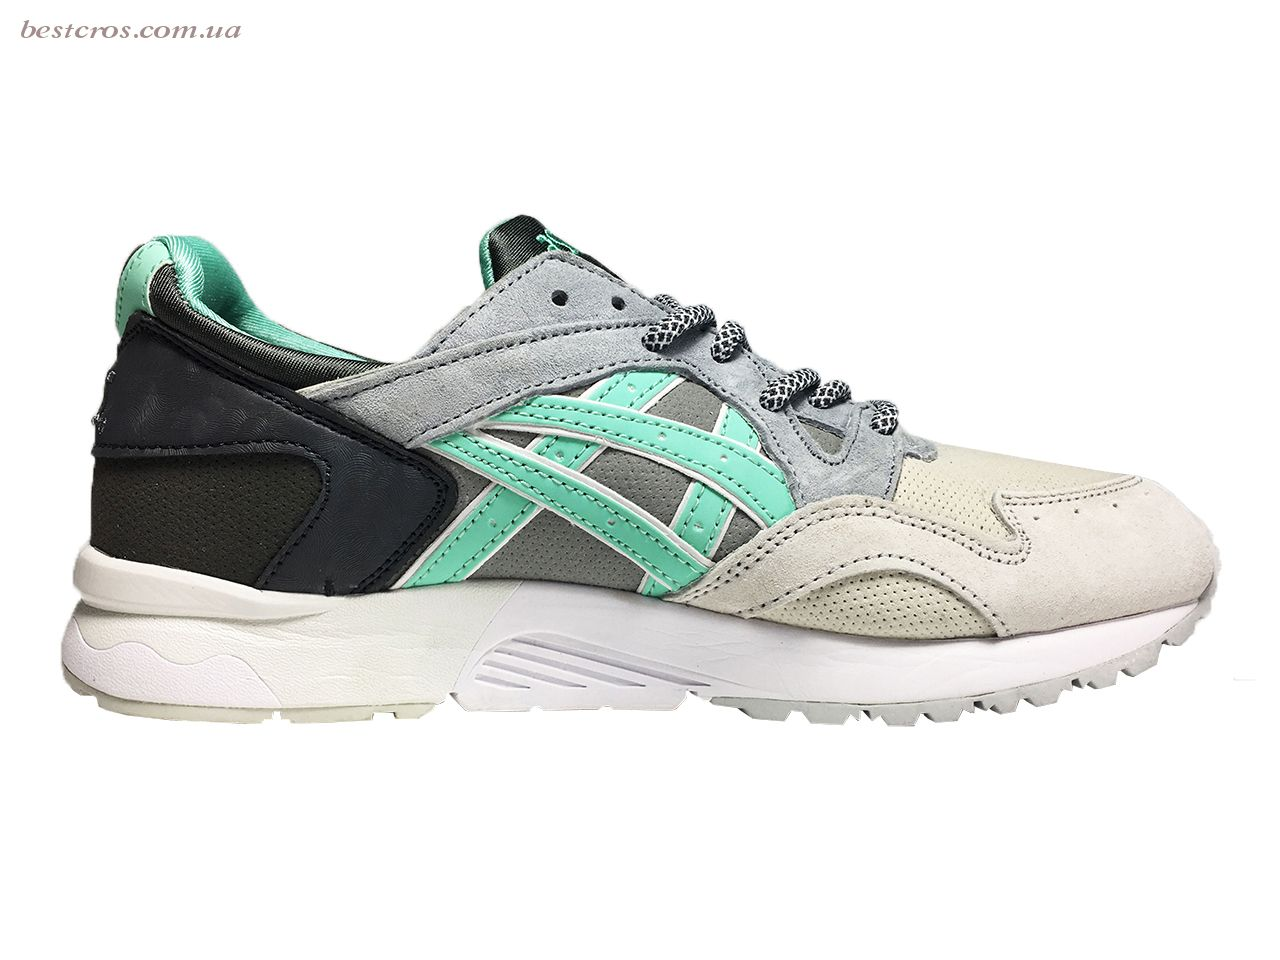 Мужские кроссовки Asics Gel Cream/Grey/Black/White/Light green - фото №2